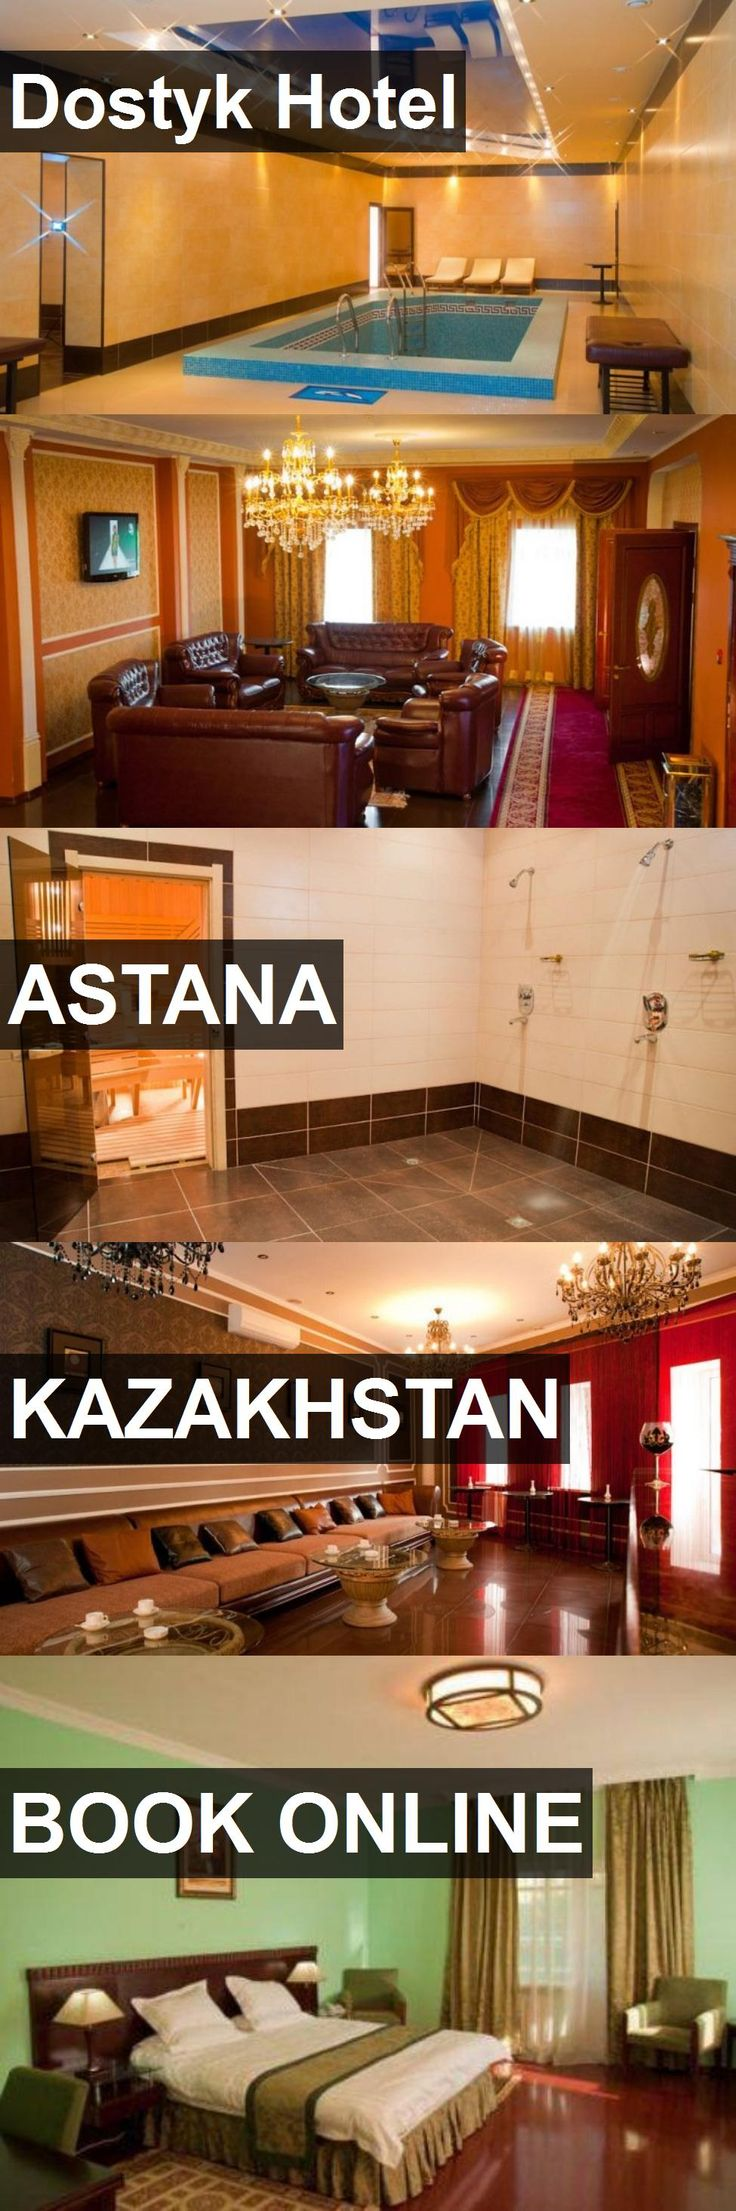 Hotel Dostyk Hotel in Astana, Kazakhstan. For more information, photos, reviews and best prices please follow the link. #Kazakhstan #Astana #DostykHotel #hotel #travel #vacation